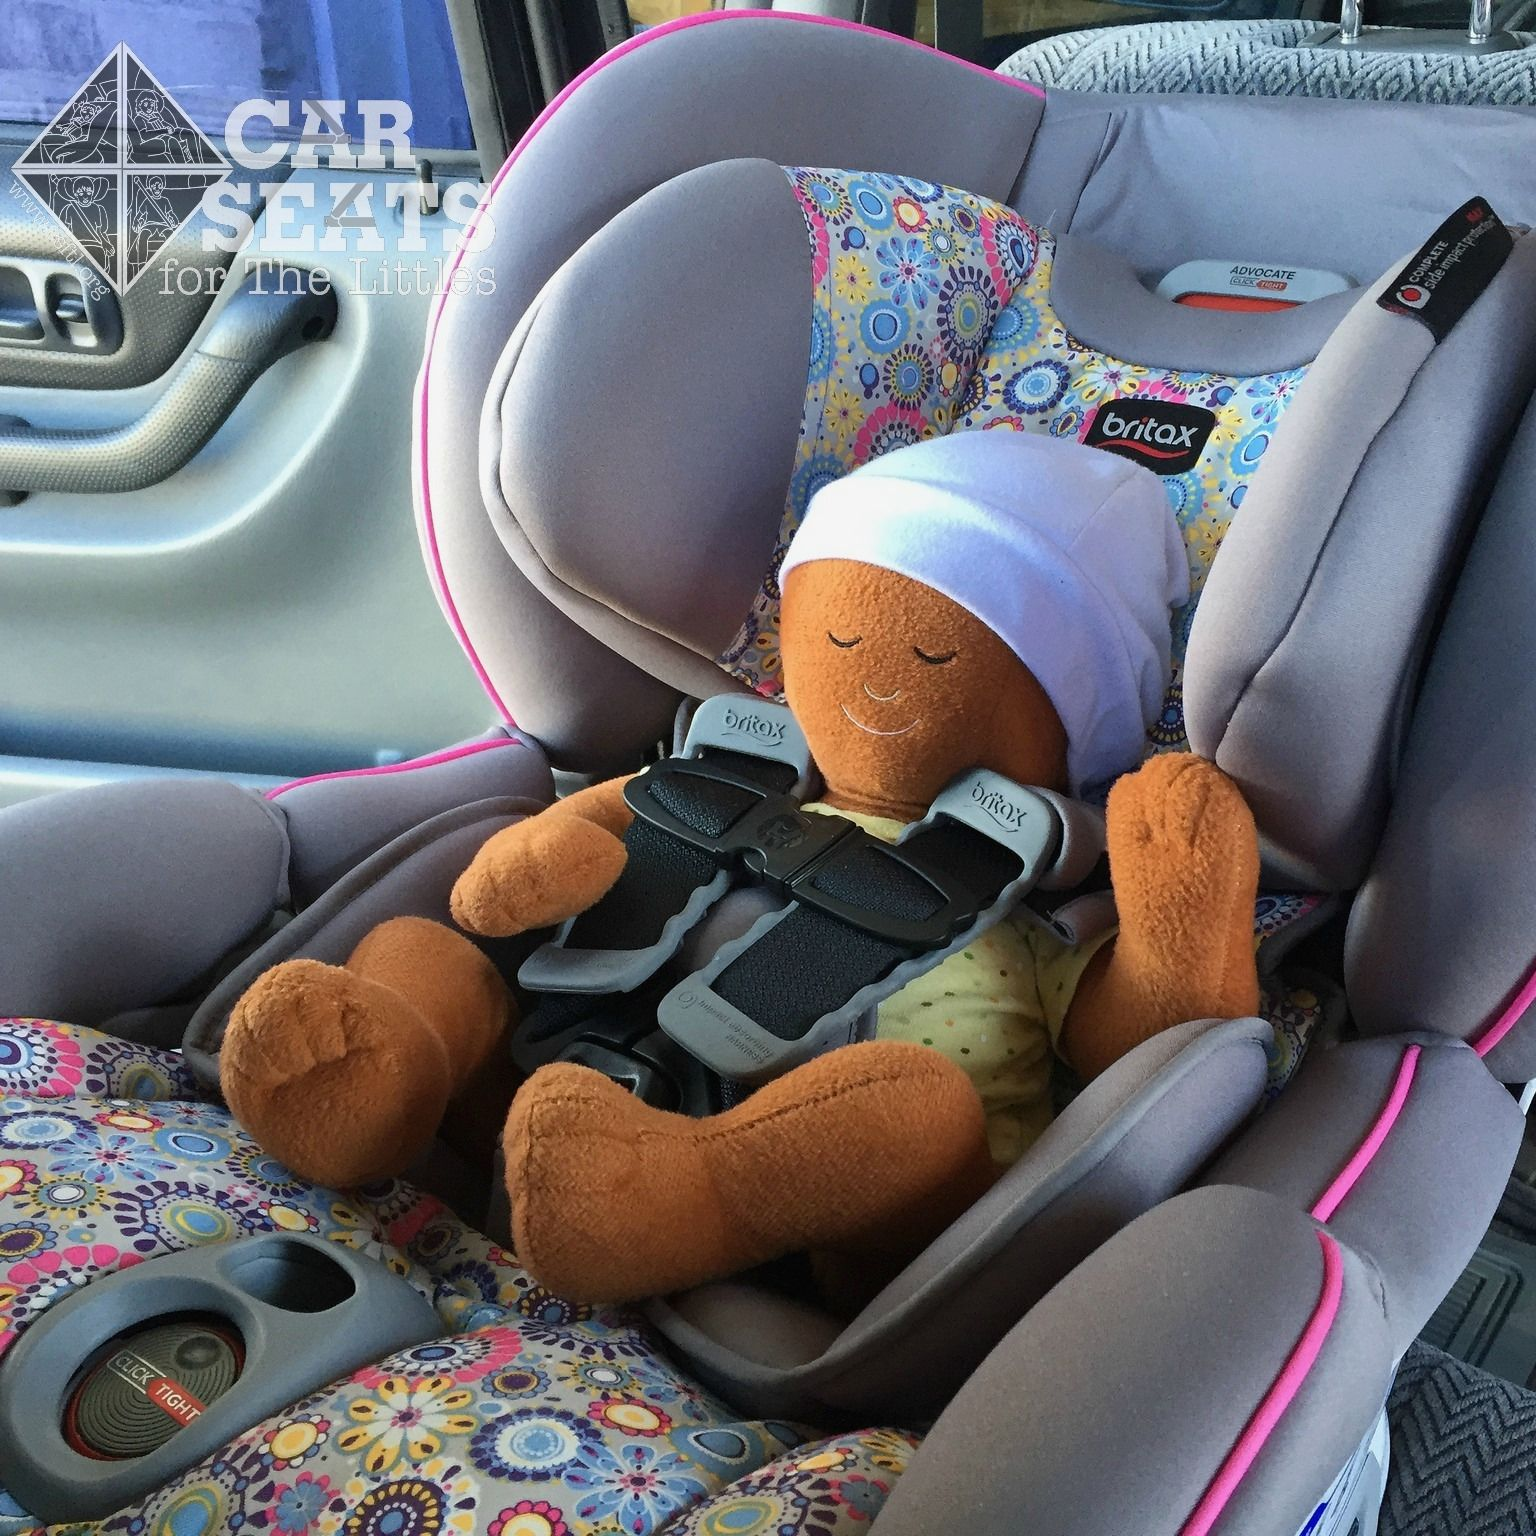 Choosing a Convertible Car Seat for a Newborn - Car Seats For The Littles